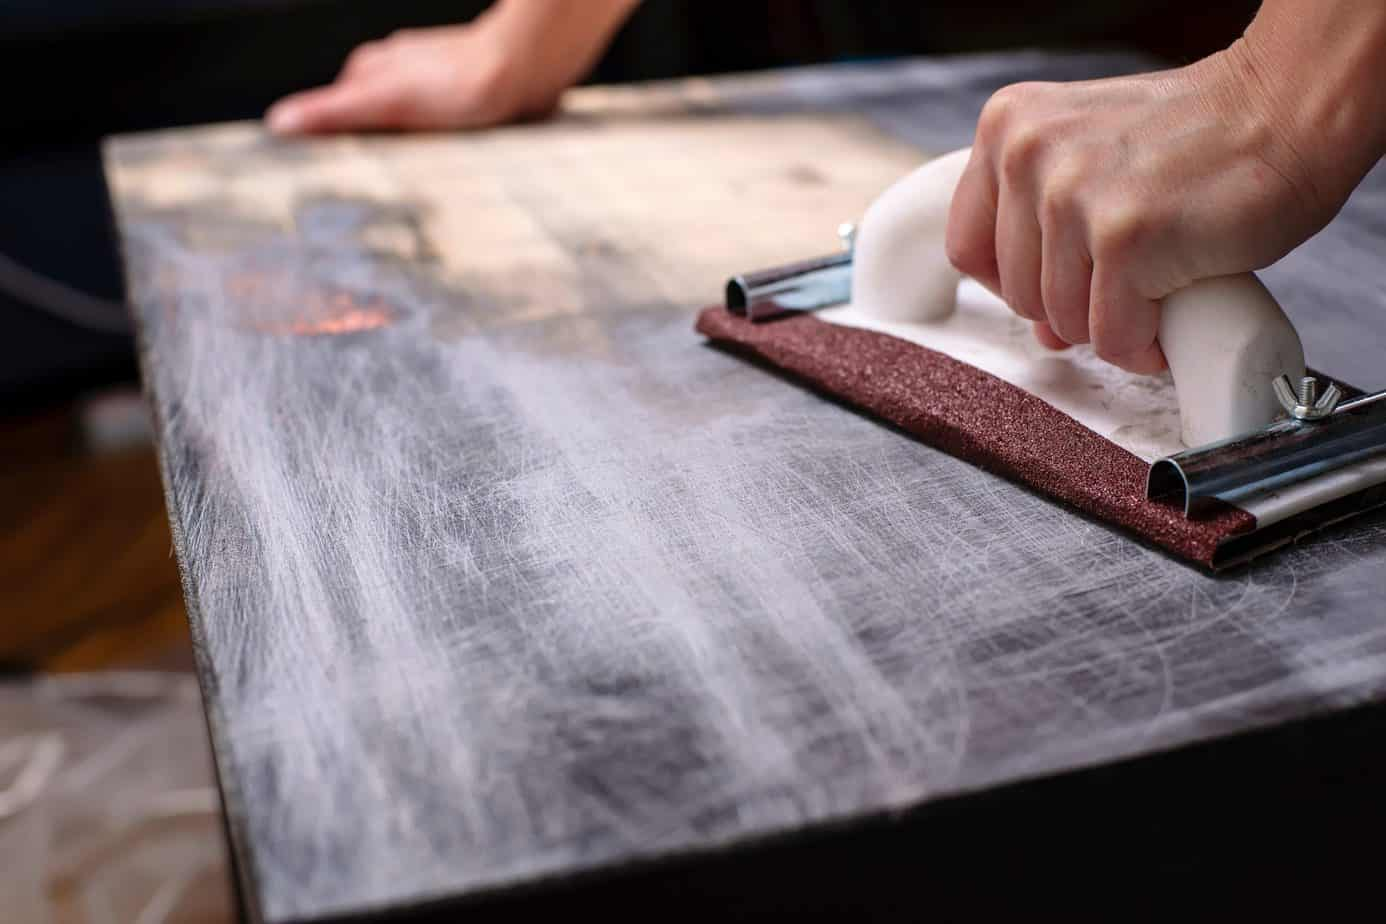 Sanding a Surface to Refinish Furniture